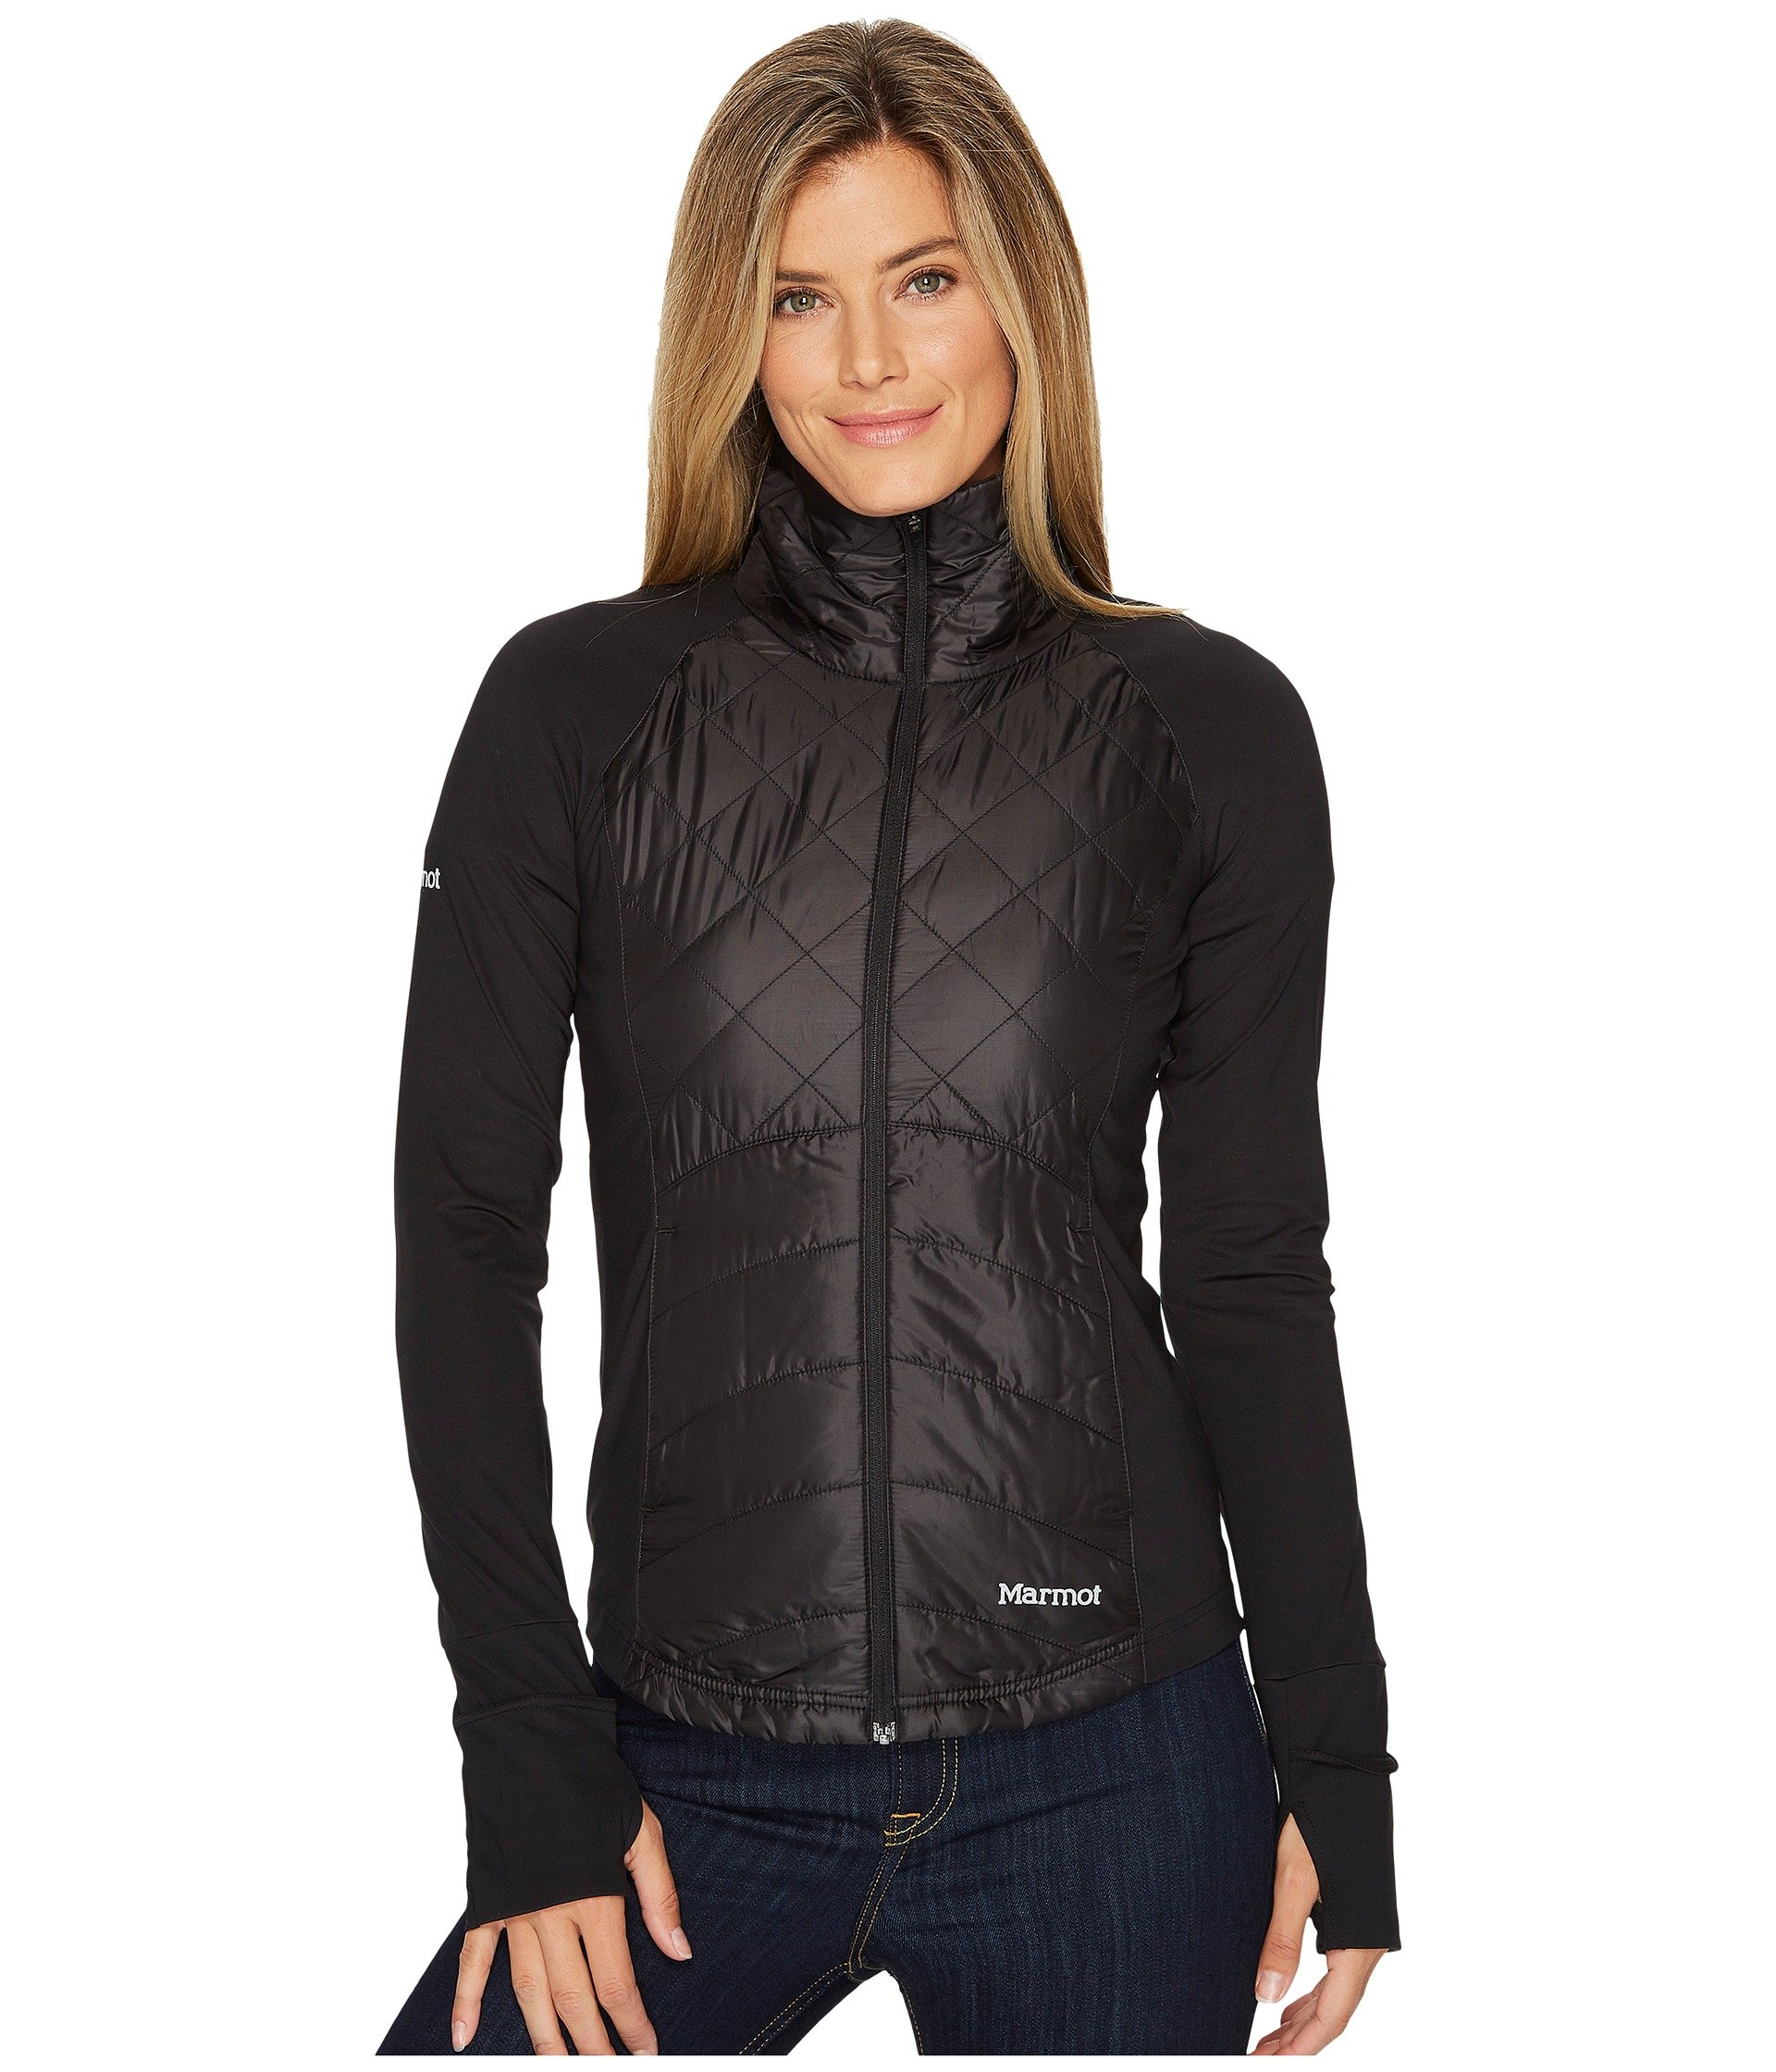 pcr reviews customer black helpful product image lightweight quilted hood klein women s jackets calvin plus jacket best quilt coat with rated size in womens